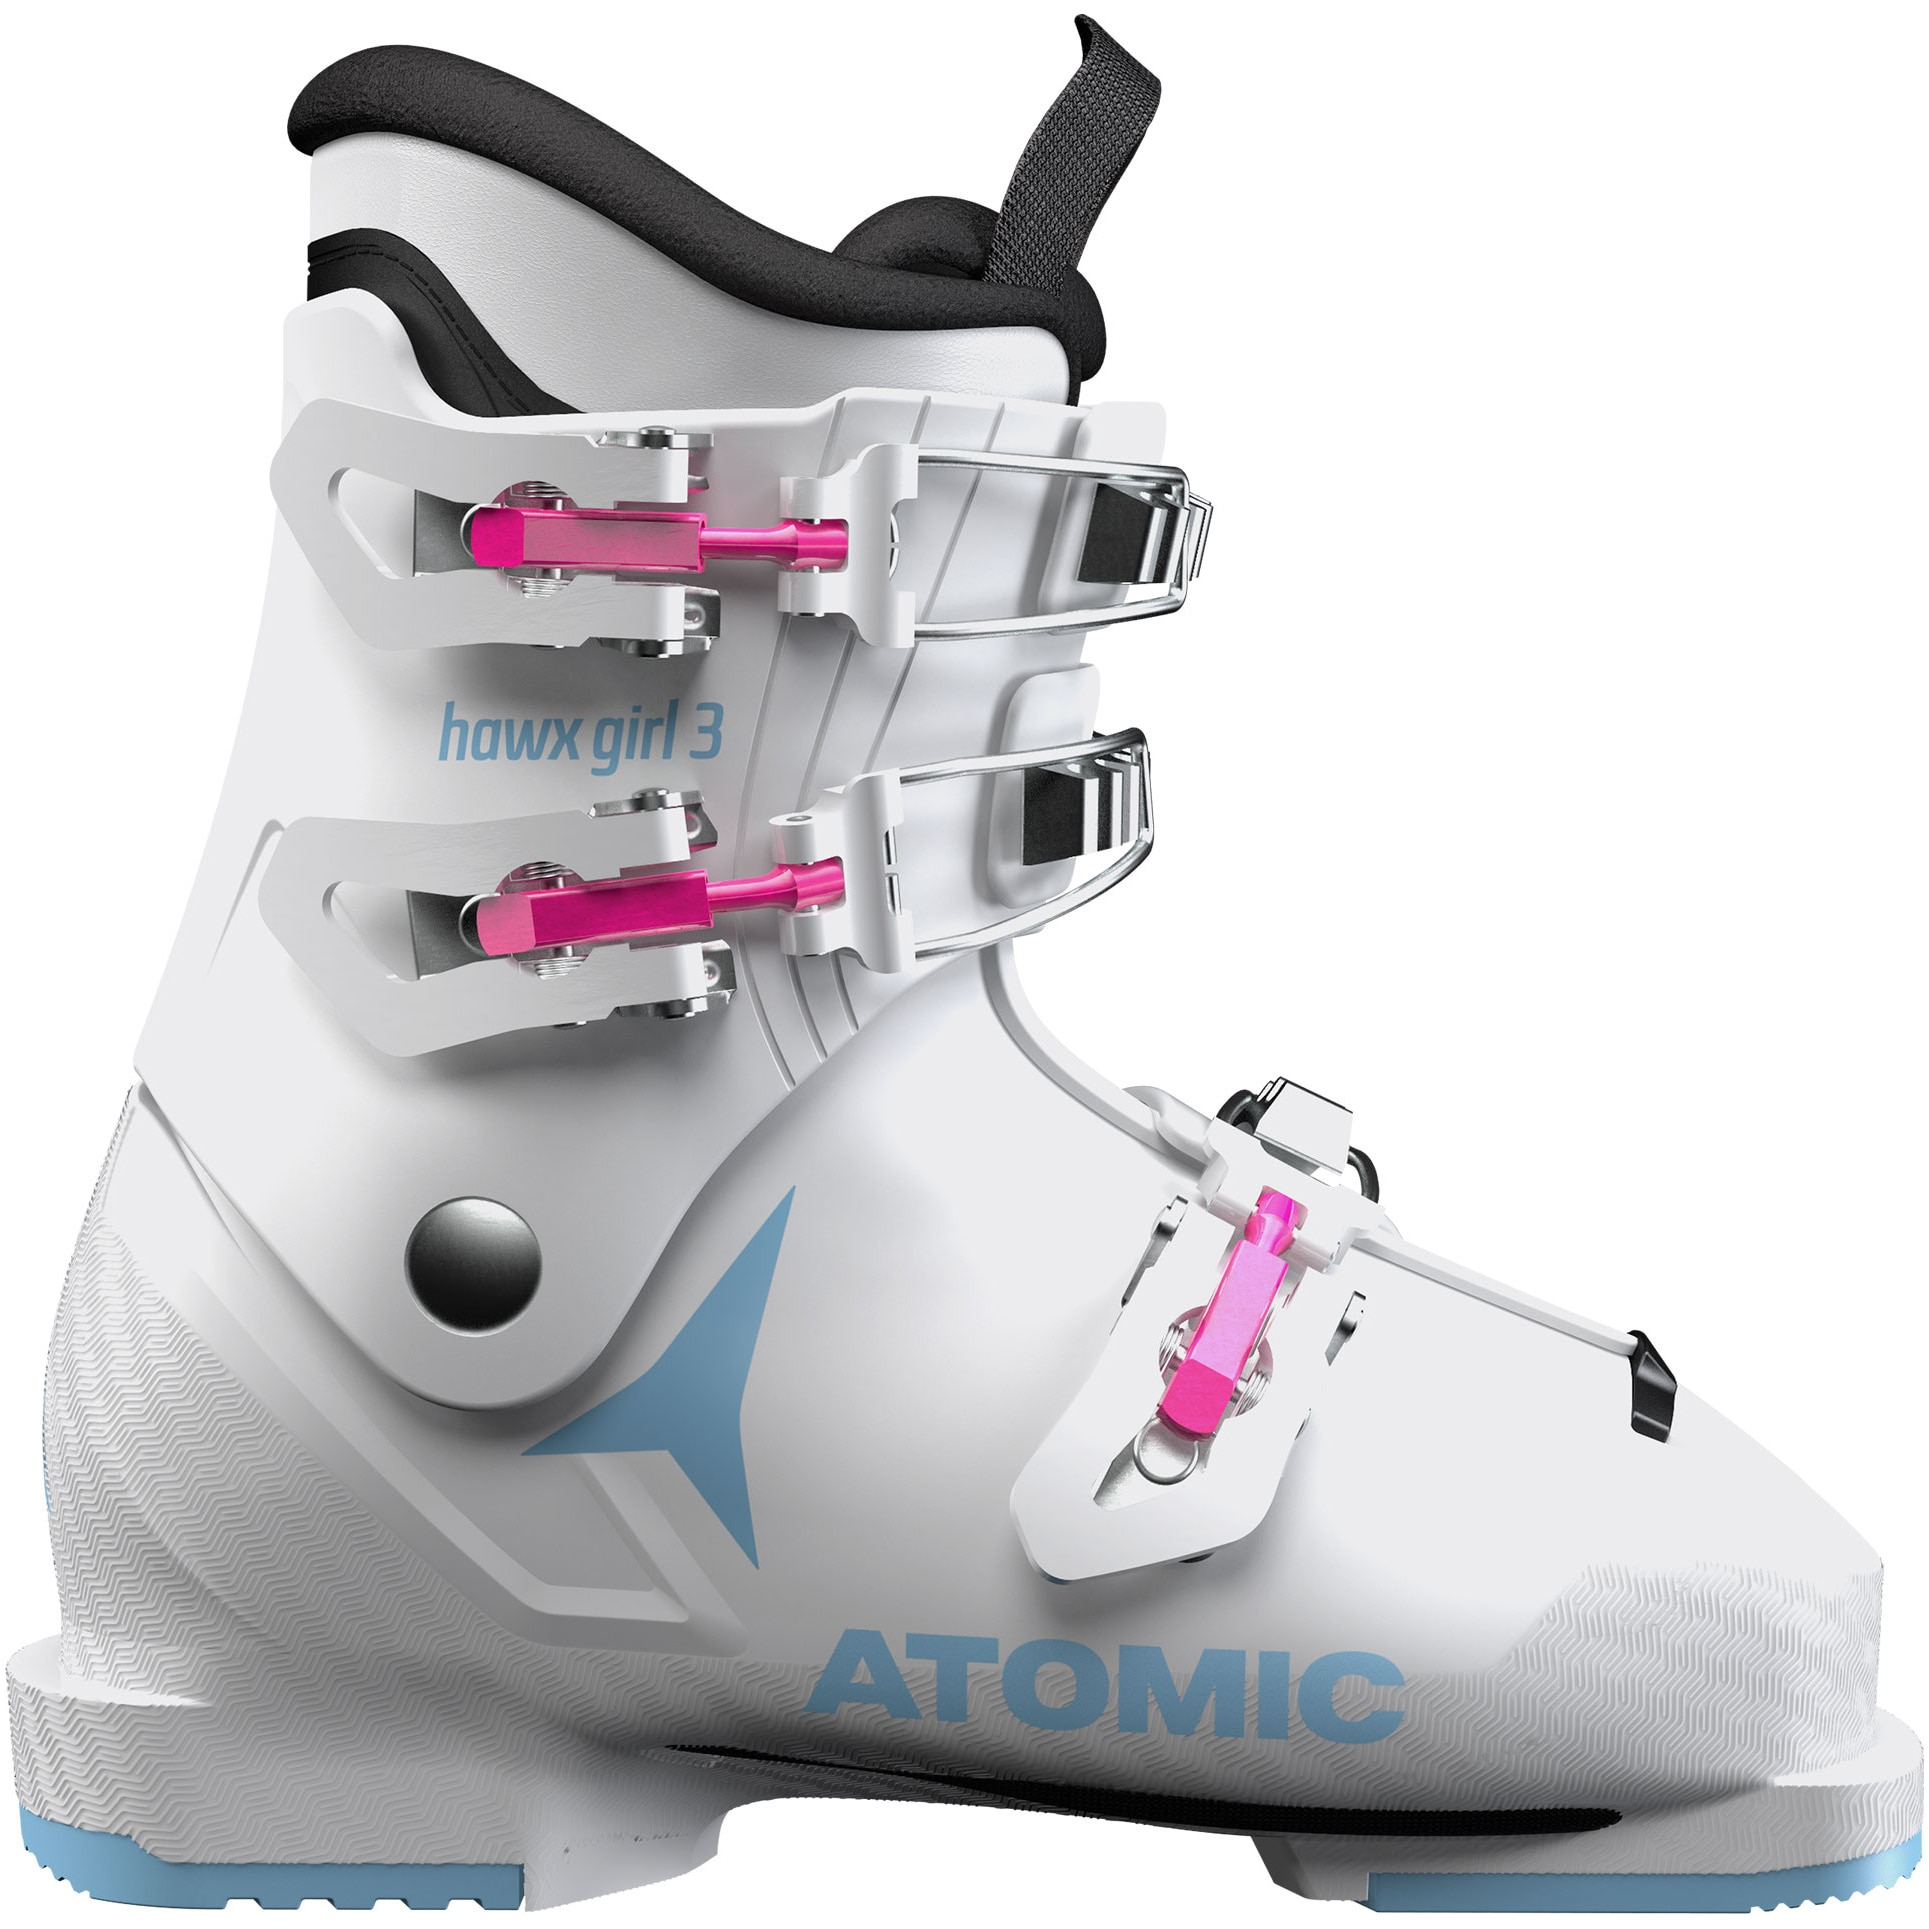 Fotografie Clapari Atomic Hawx Girl 3, White/Denim Blue, White/Denim Blue, 21, 21.5